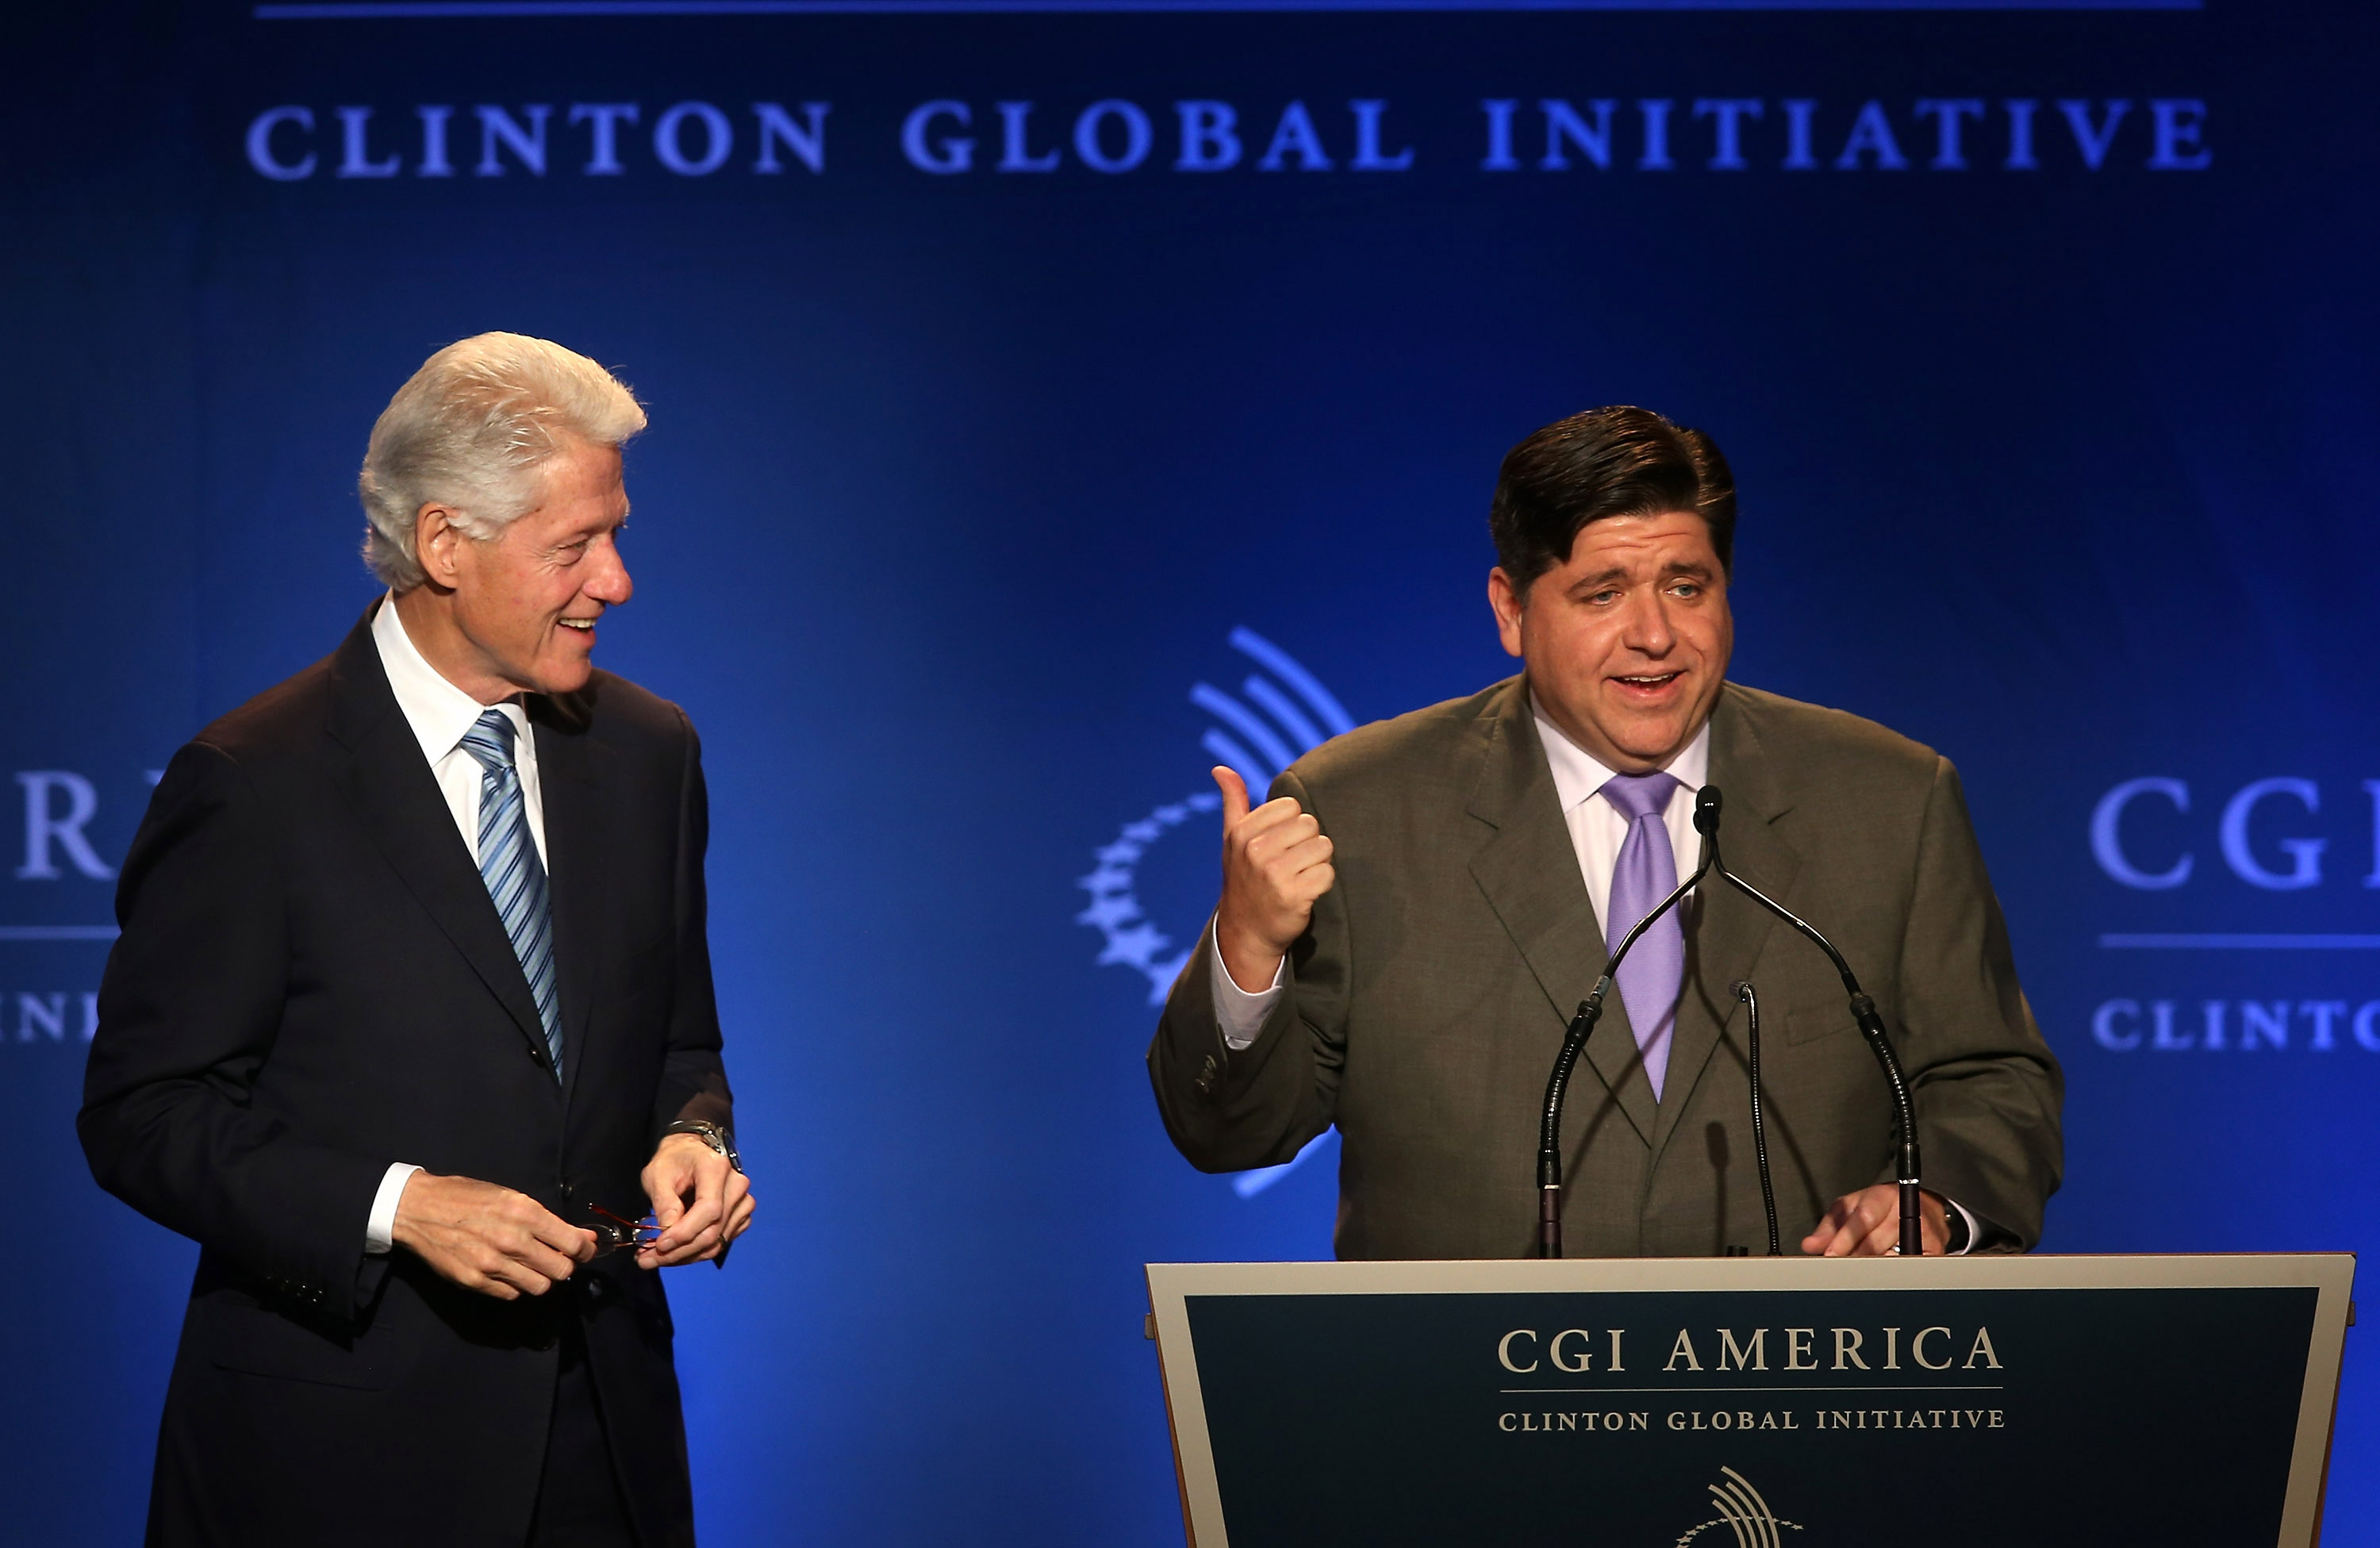 Former President Bill Clinton (L) listens as venture capitalist J.B. Pritzker speaks to guests at the Clinton Global Initiative (CGI) on June 13, 2013 in Chicago, Illinois. Scott Olson/Getty Images